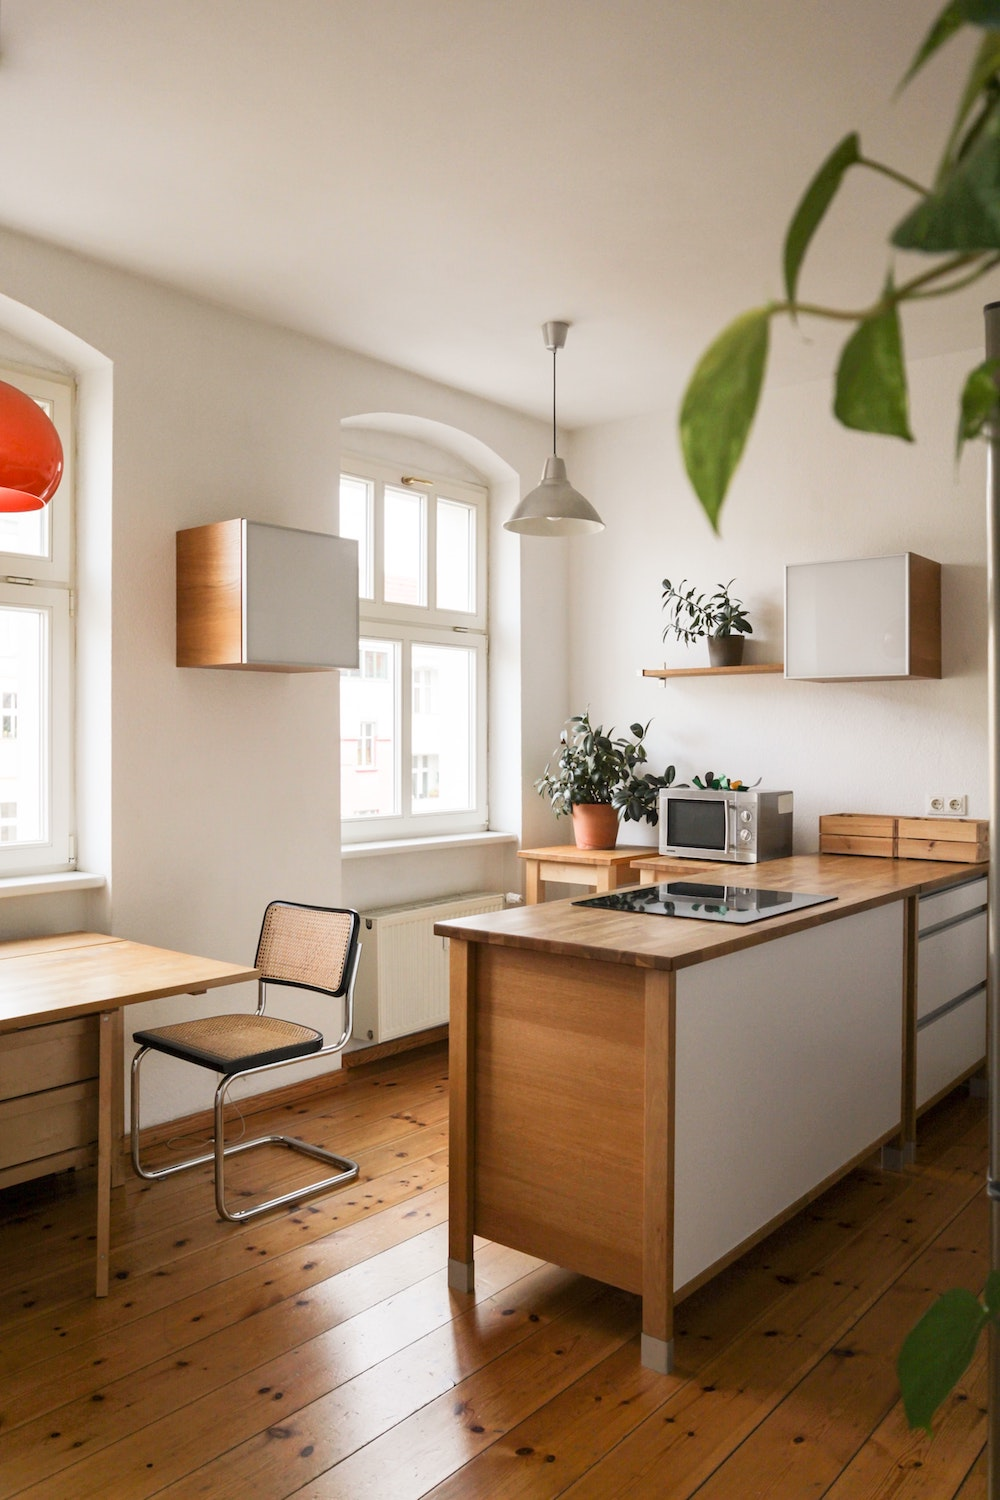 Rent bright altbau kitchen as a movie and photoshoot  location